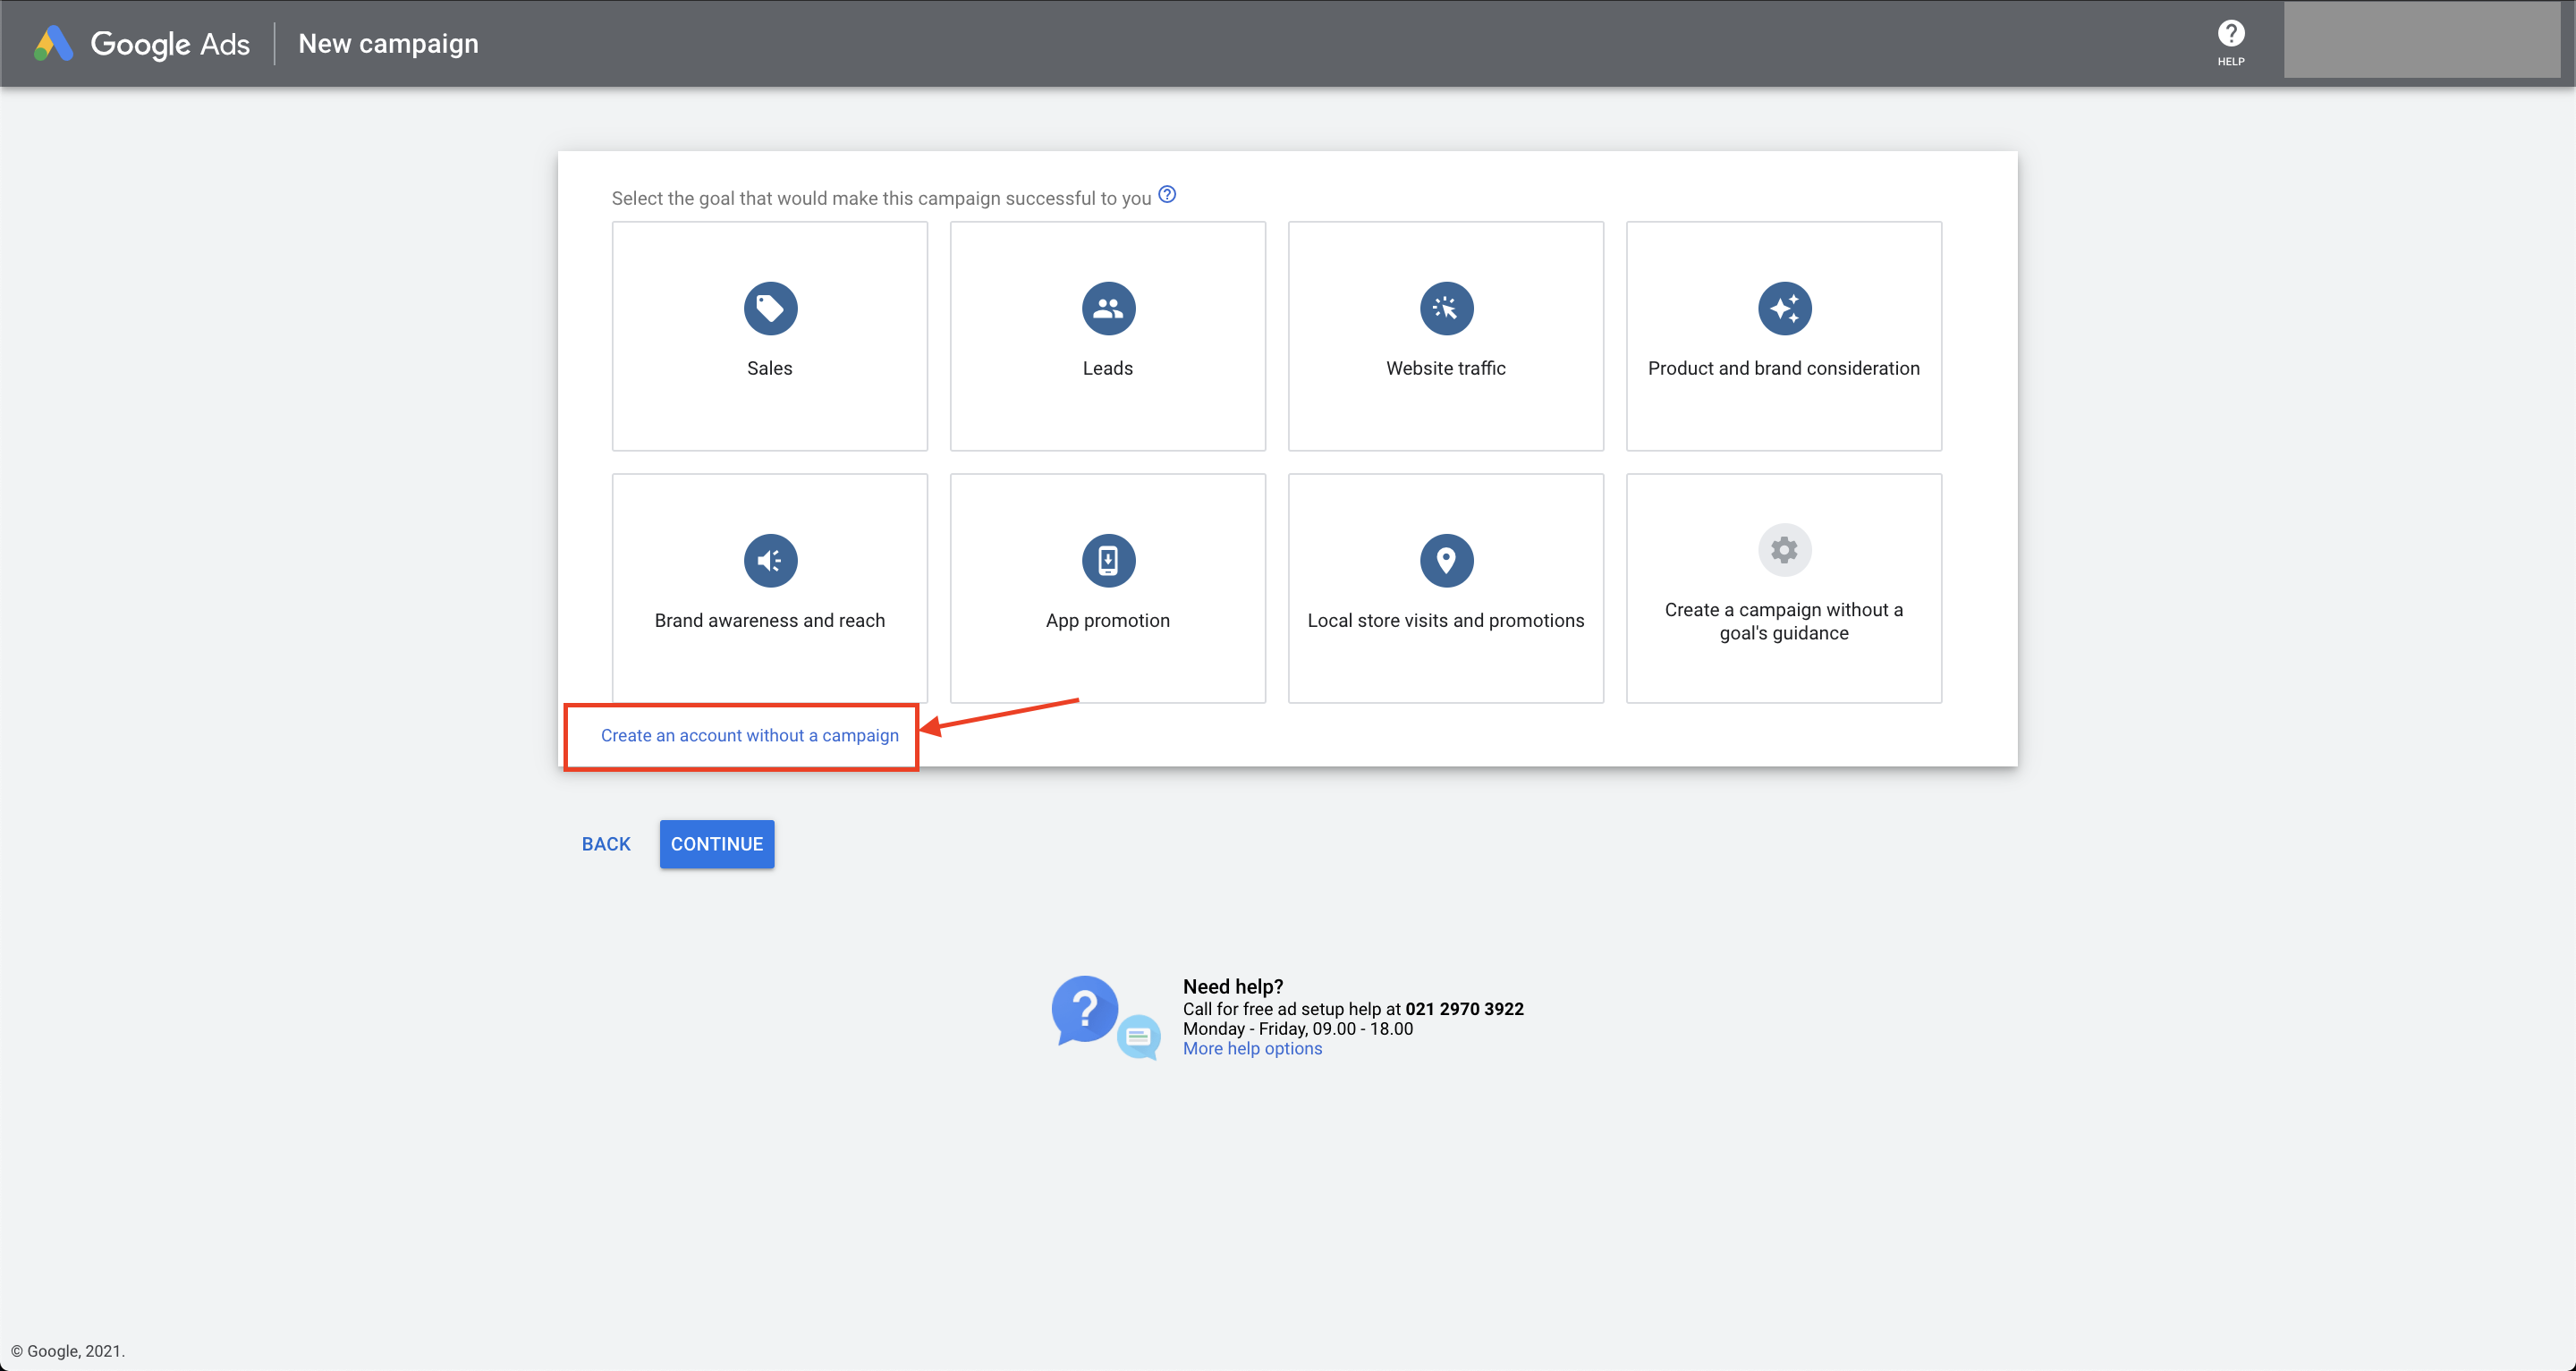 tampilan login ke google ads create an account without a campaign